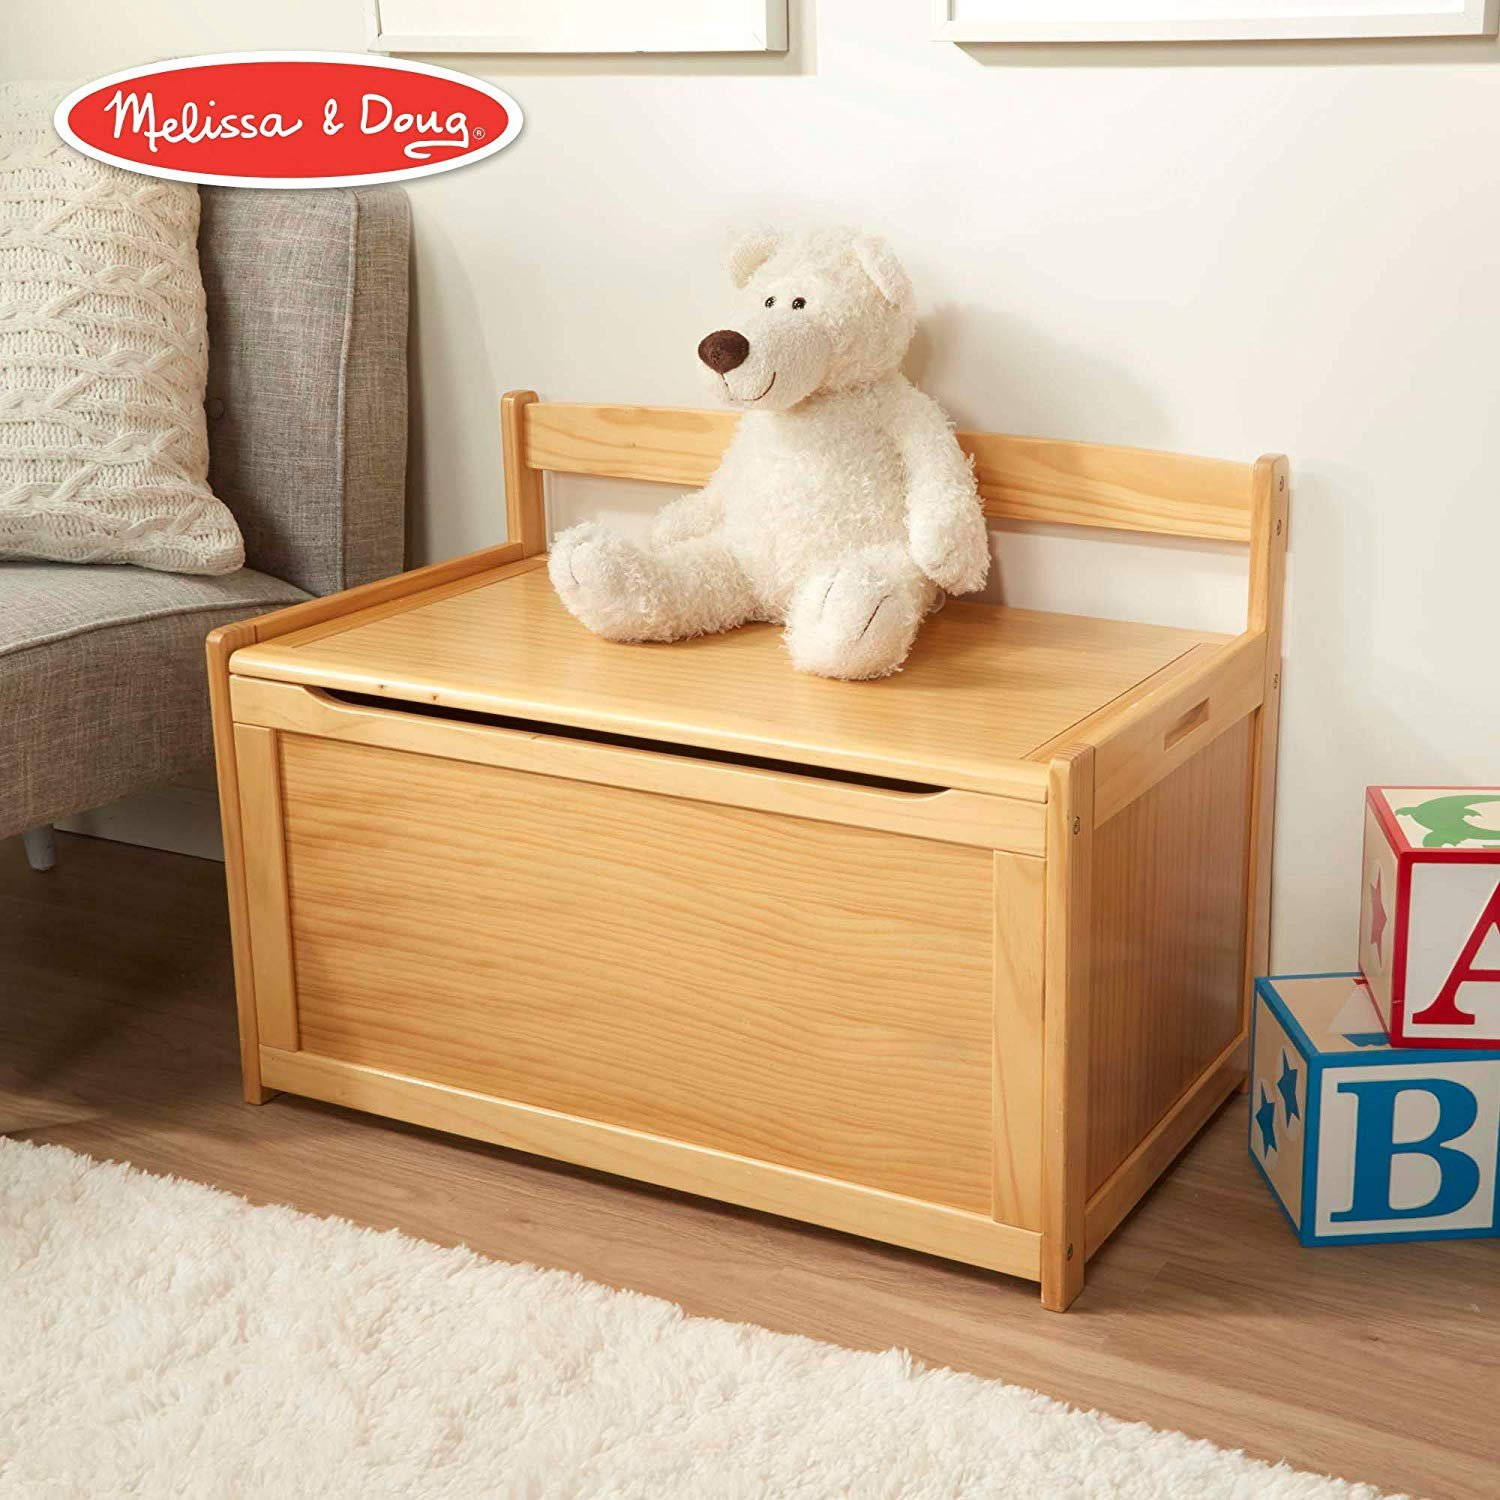 Wooden Toy Chest - Honey by Melissa & Doug